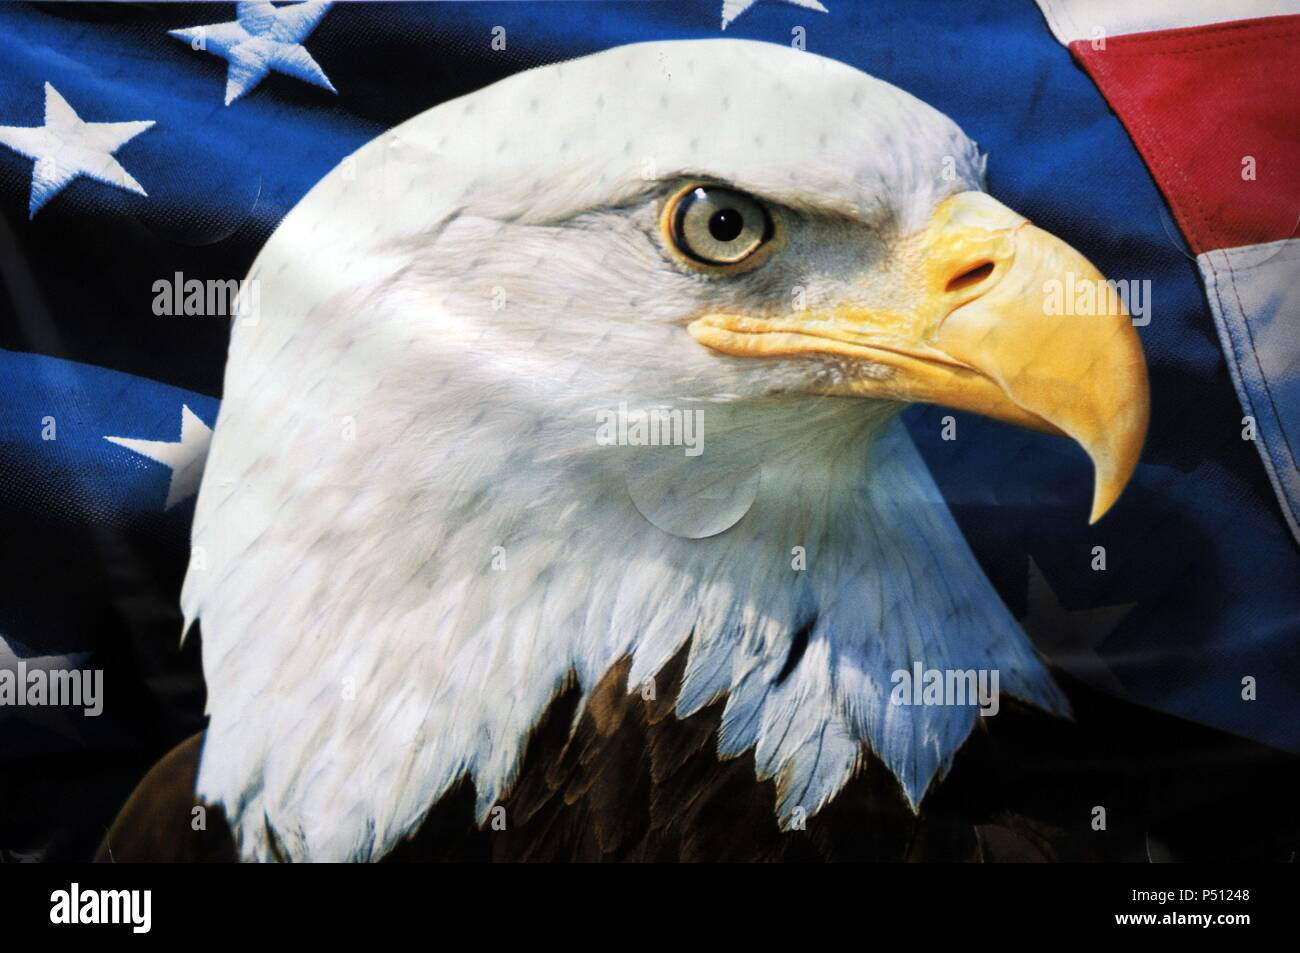 The Bald Eagle It Is The National Bird And Symbol Of The United